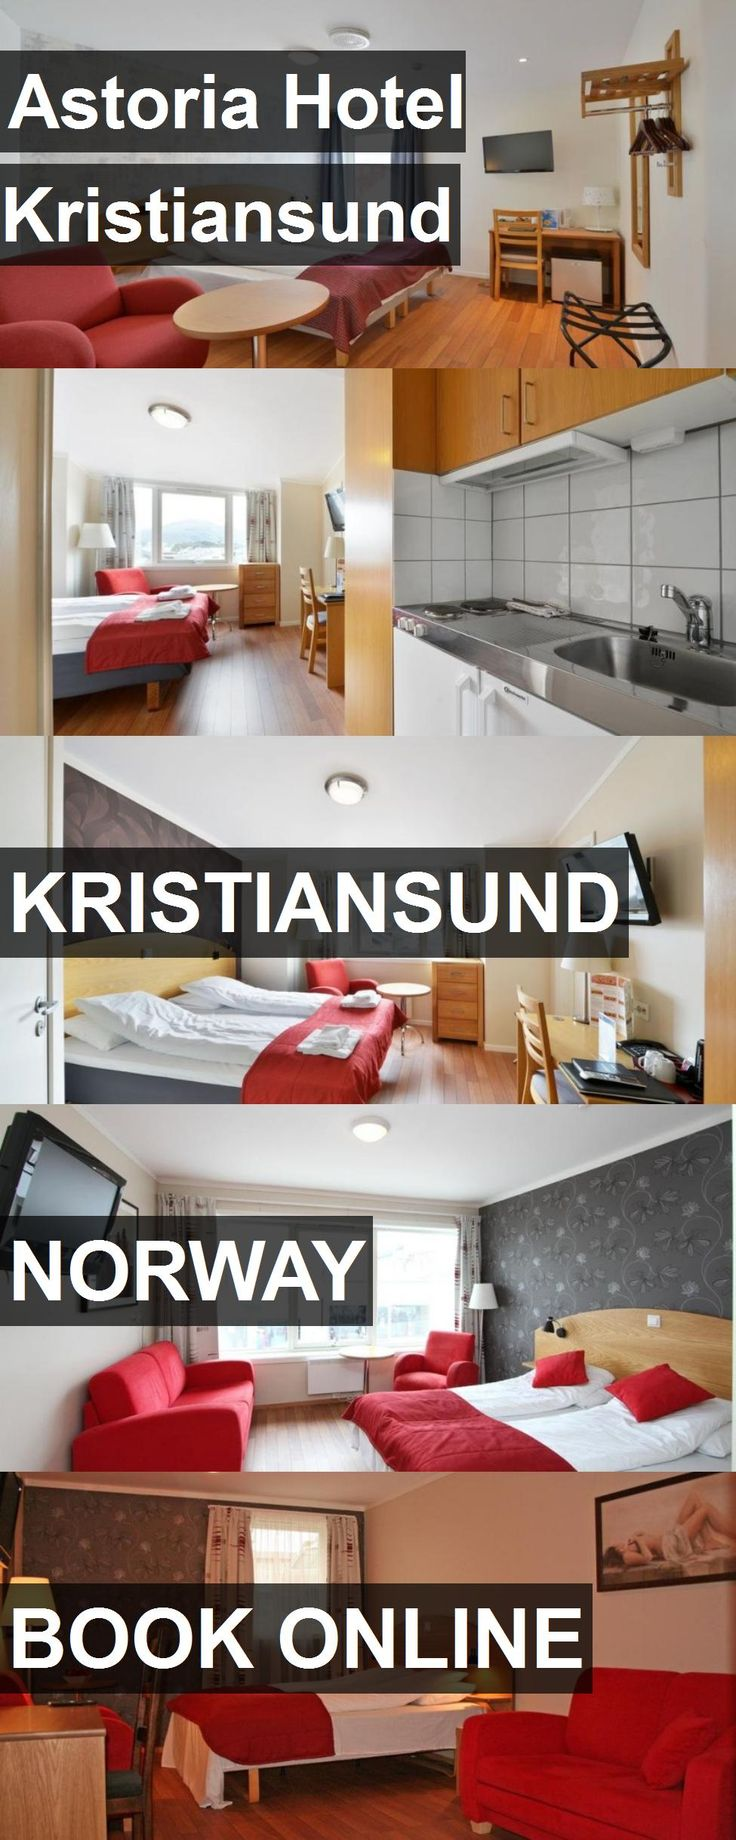 Hotel Astoria Hotel Kristiansund in Kristiansund, Norway. For more information, photos, reviews and best prices please follow the link. #Norway #Kristiansund #AstoriaHotelKristiansund #hotel #travel #vacation